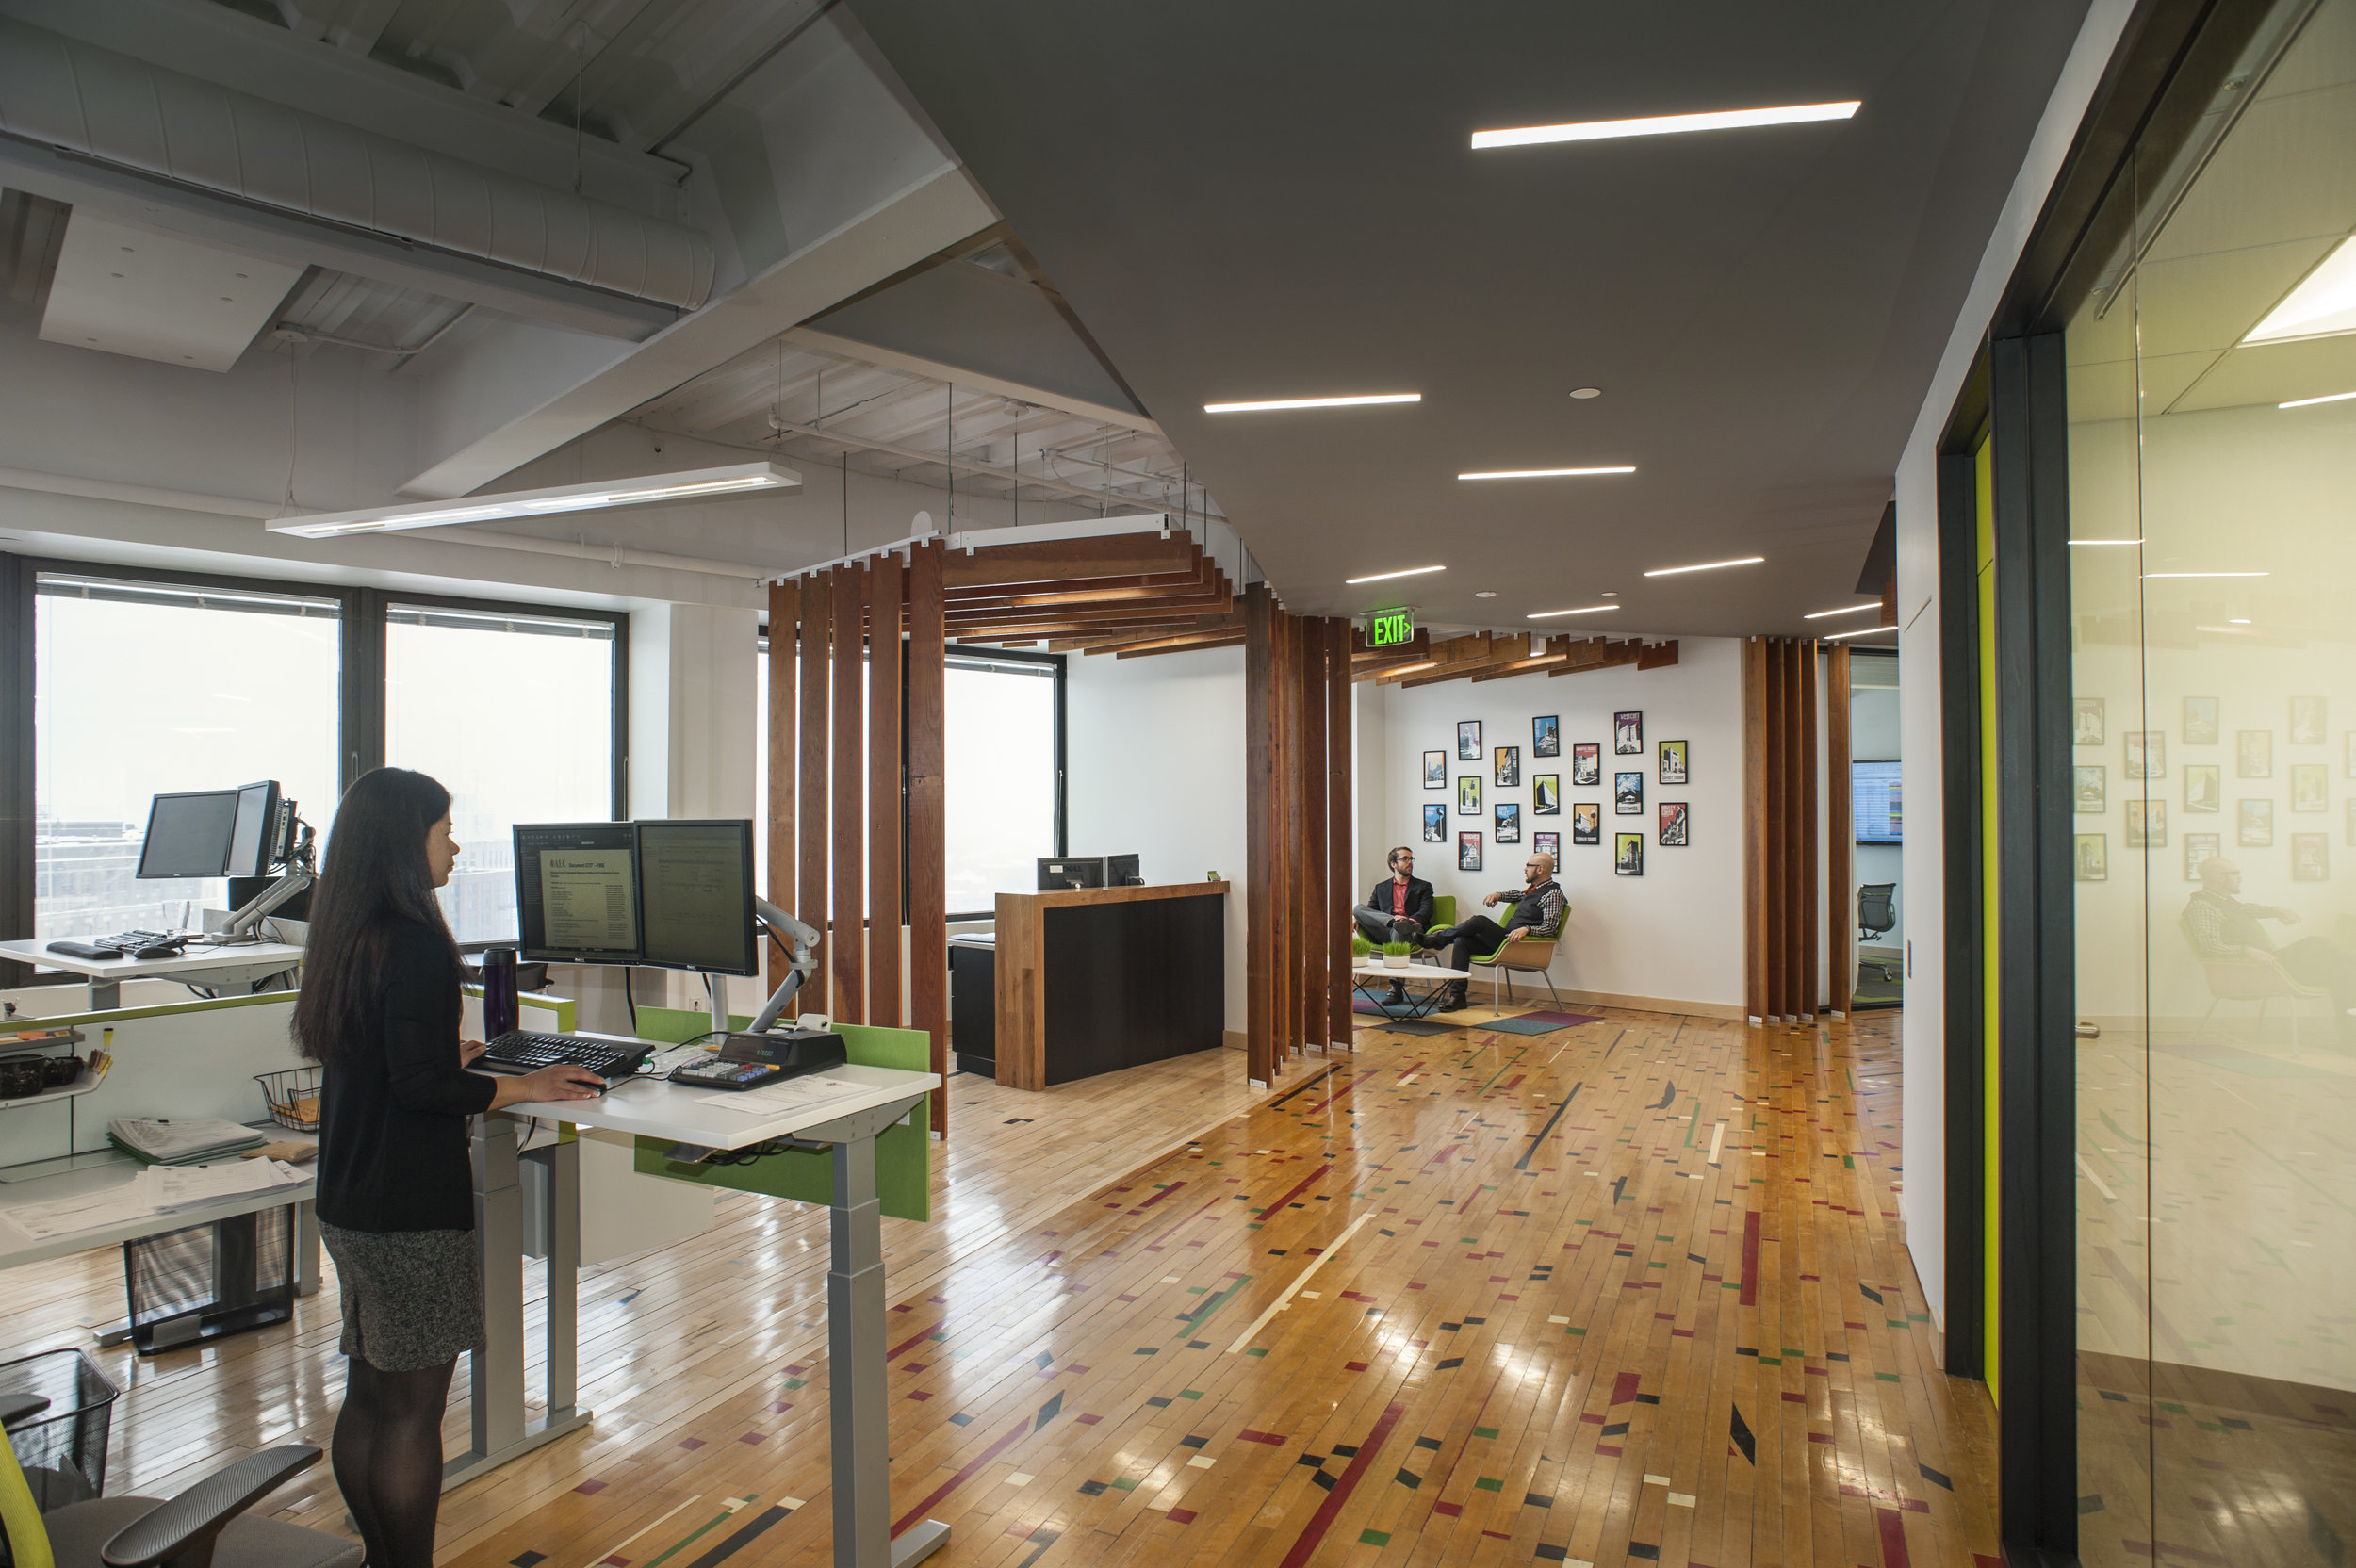 ASHLEY MCGRAW ARCHITECTS - American Institute of Architects (AIA) Central New York - 2015 Award of Excellence (2015)